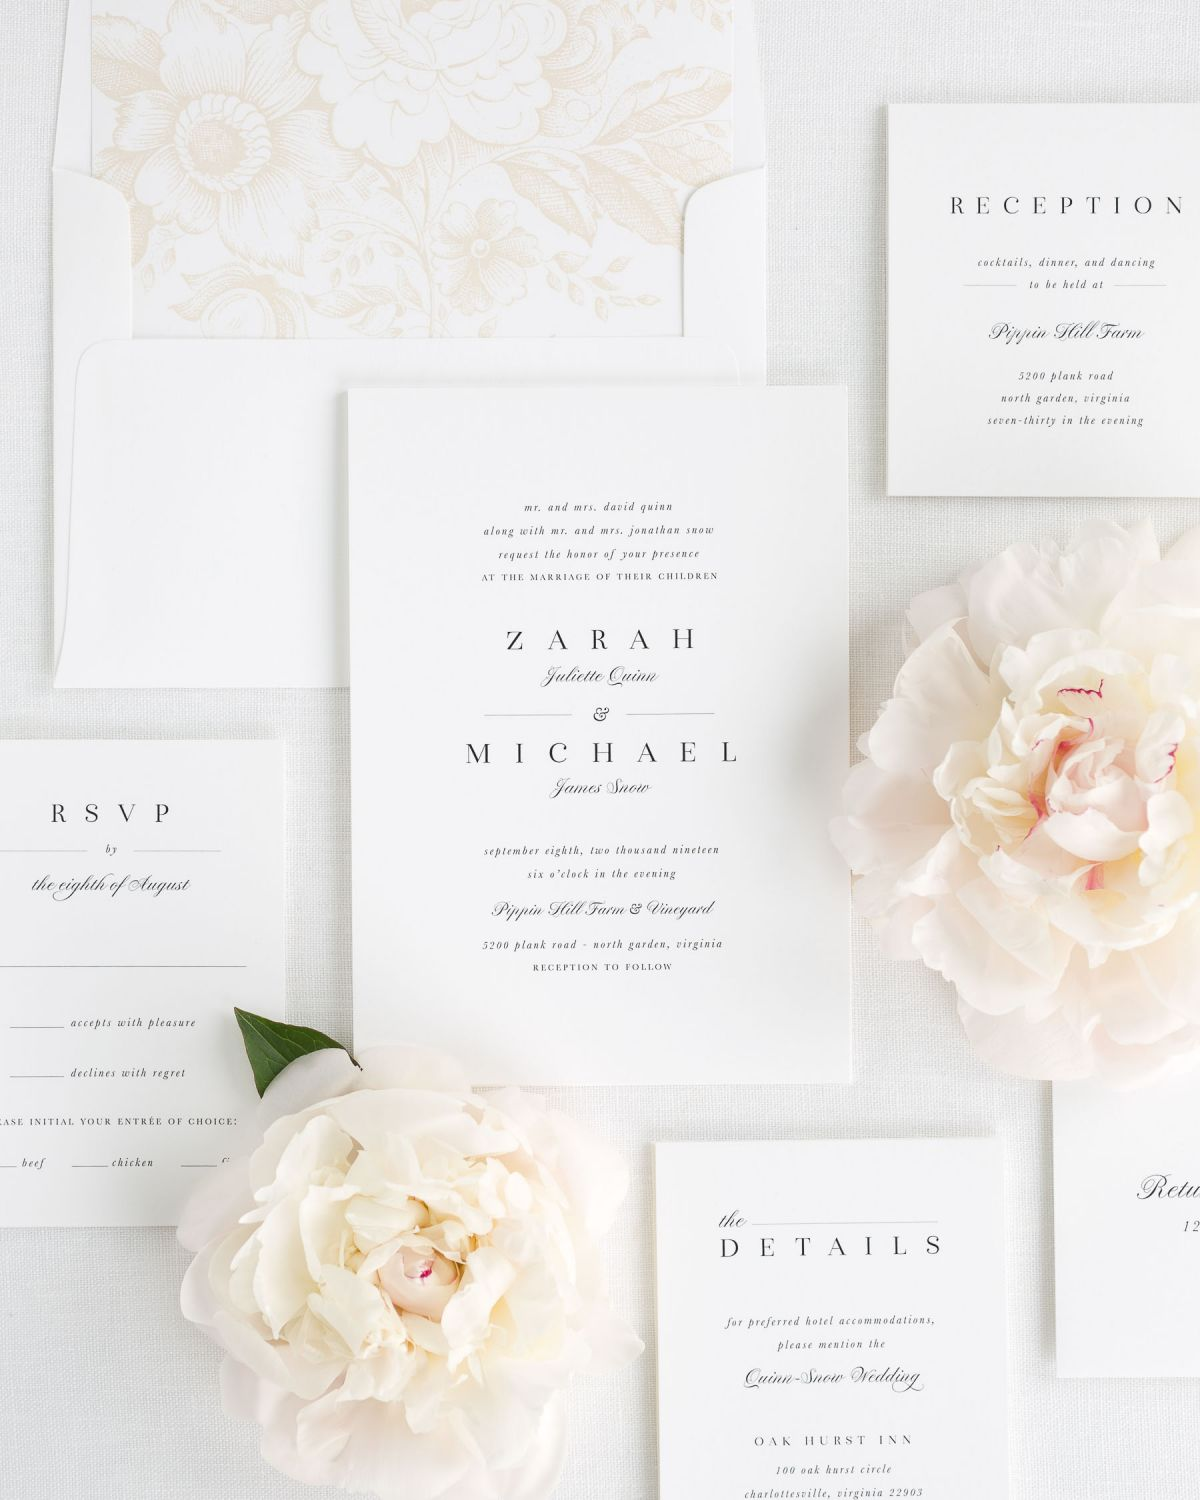 Classic Wedding Invitations in Champagne with a Floral Envelope Liner